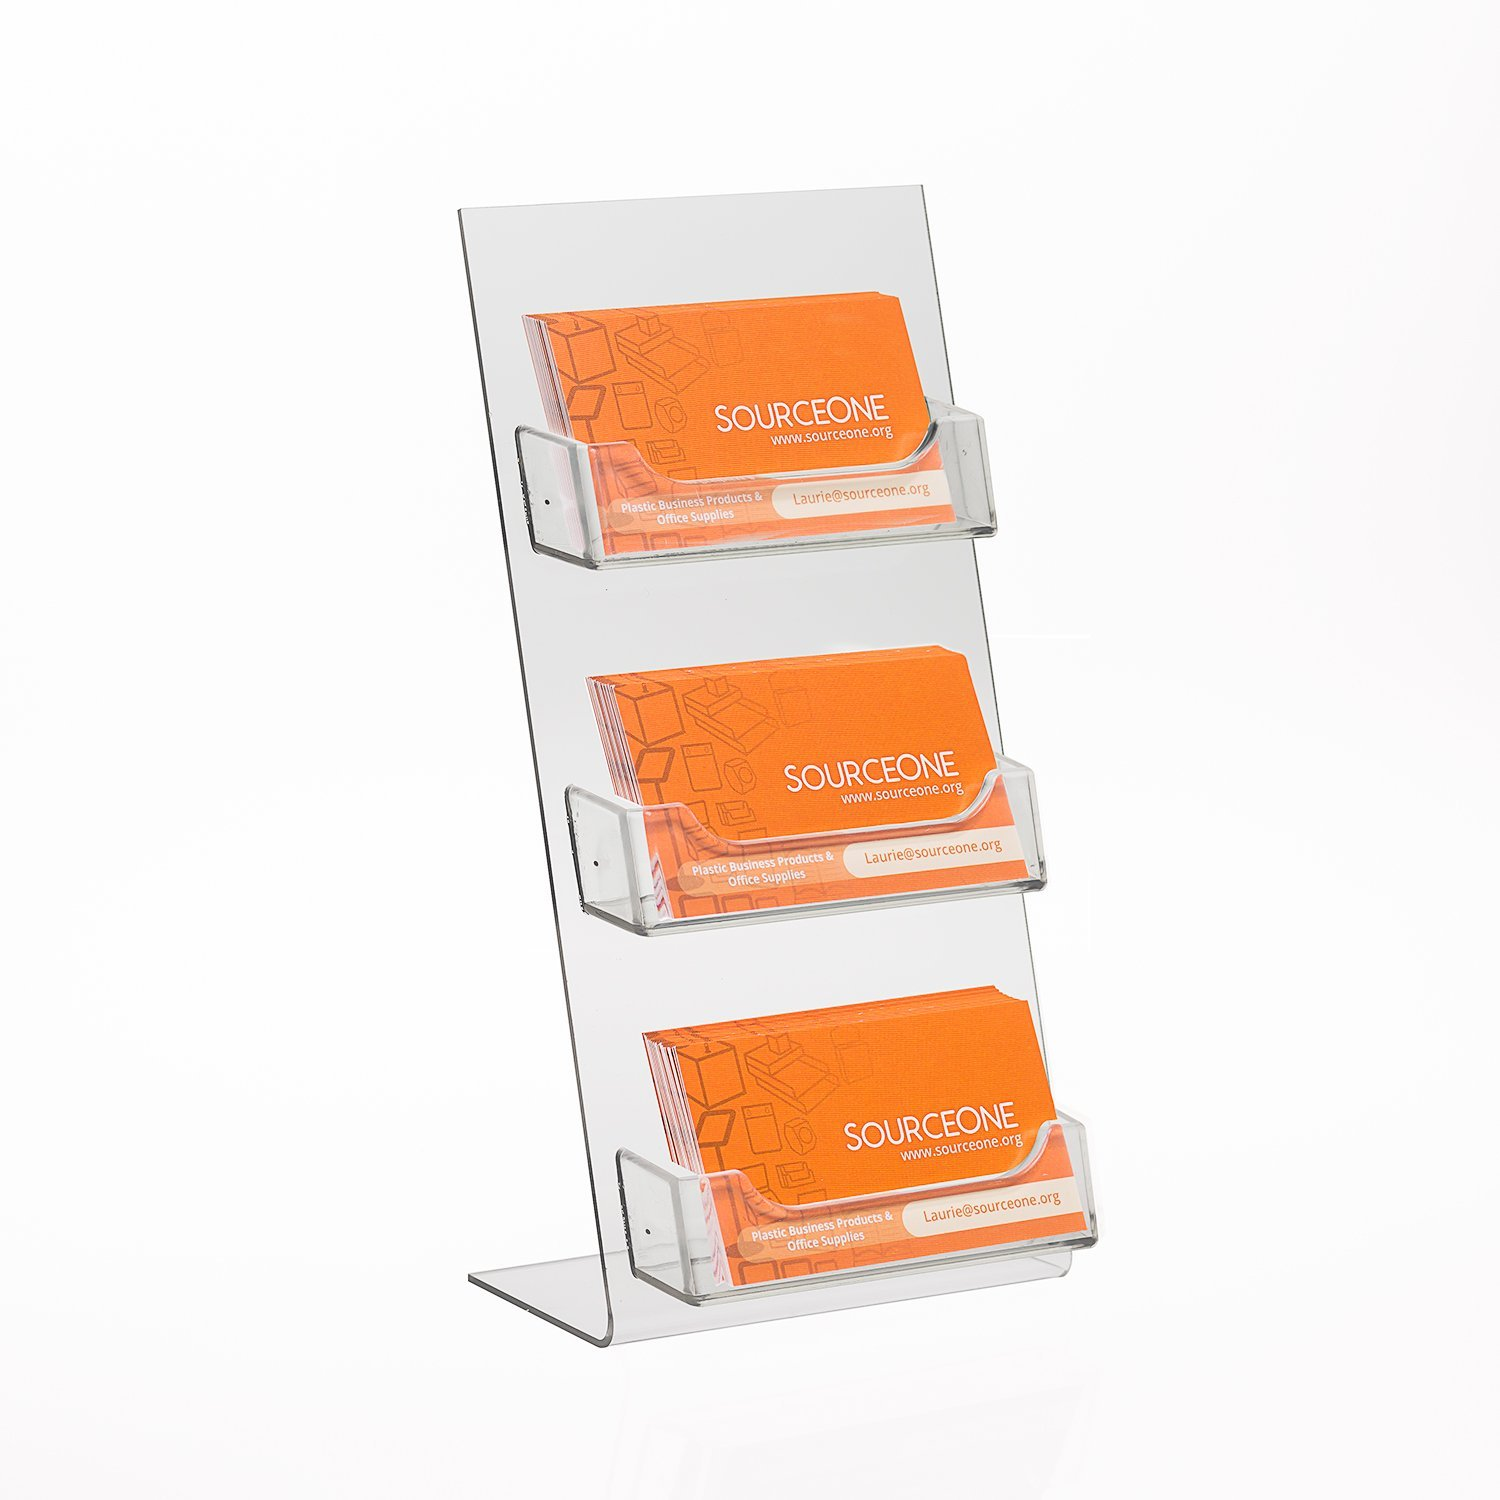 new source one premium counter top business card holder t card